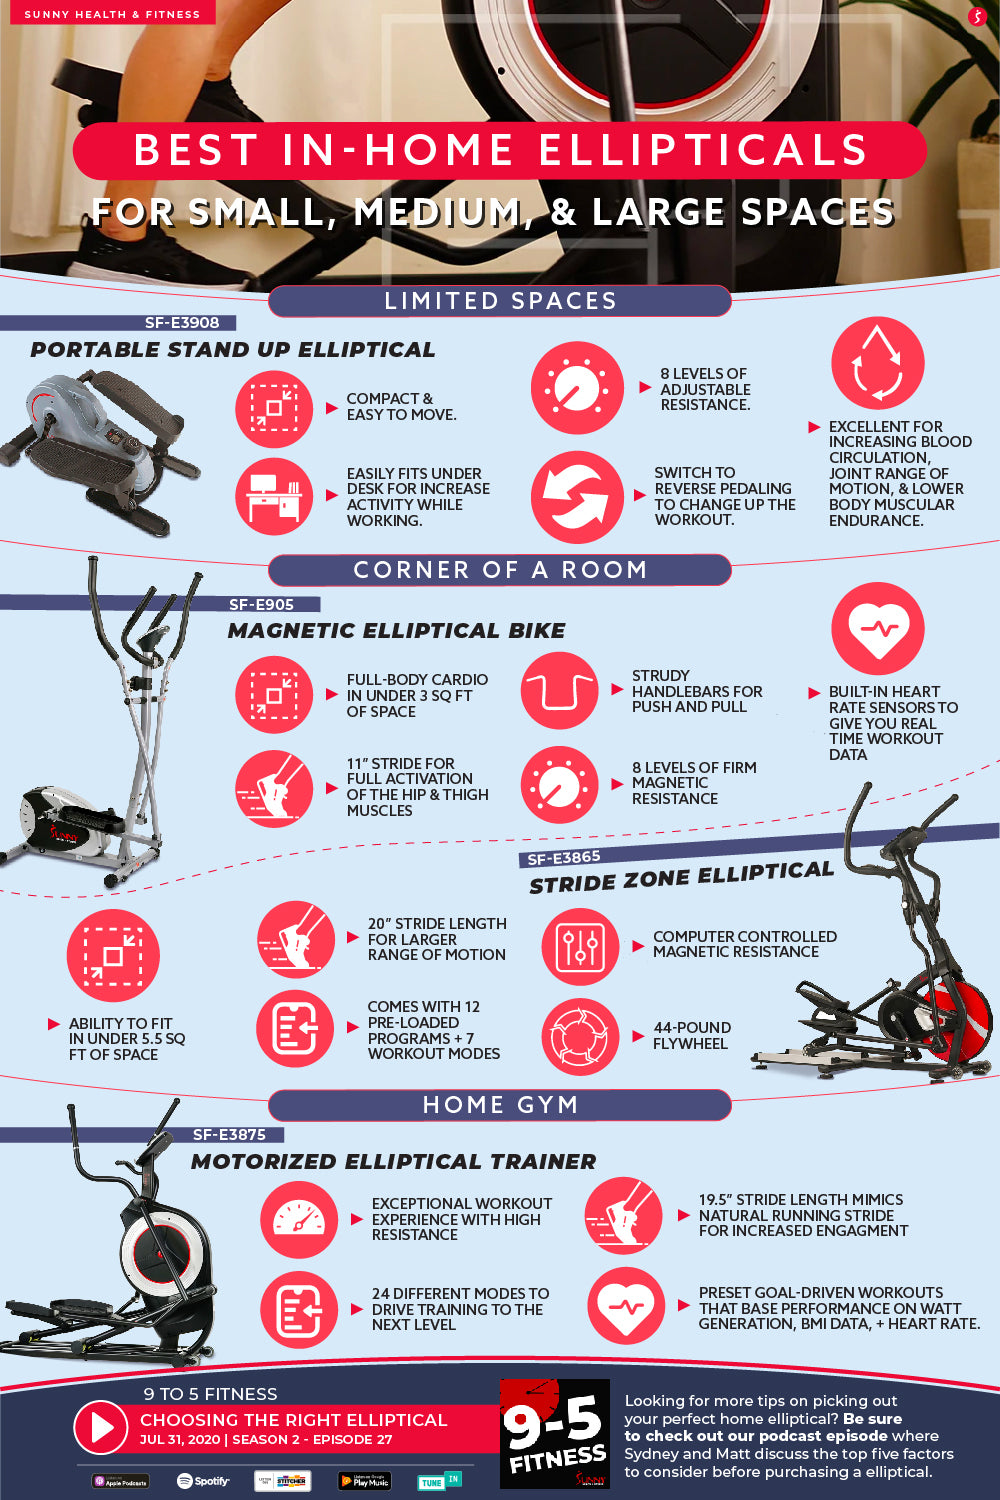 Best In-Home Ellipticals Infographic